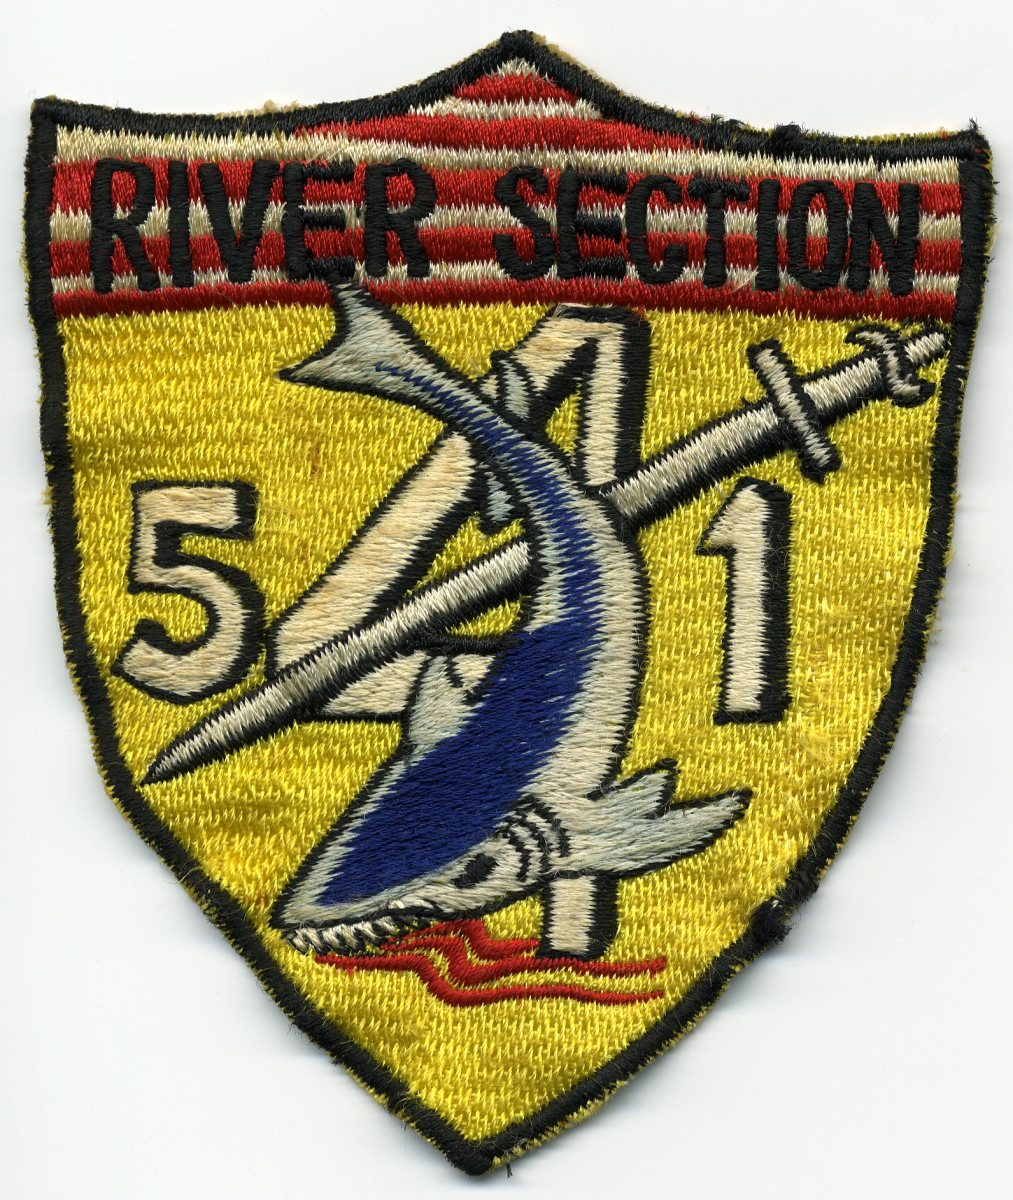 Original Japanese-made River Division 541 version worn by the unit.